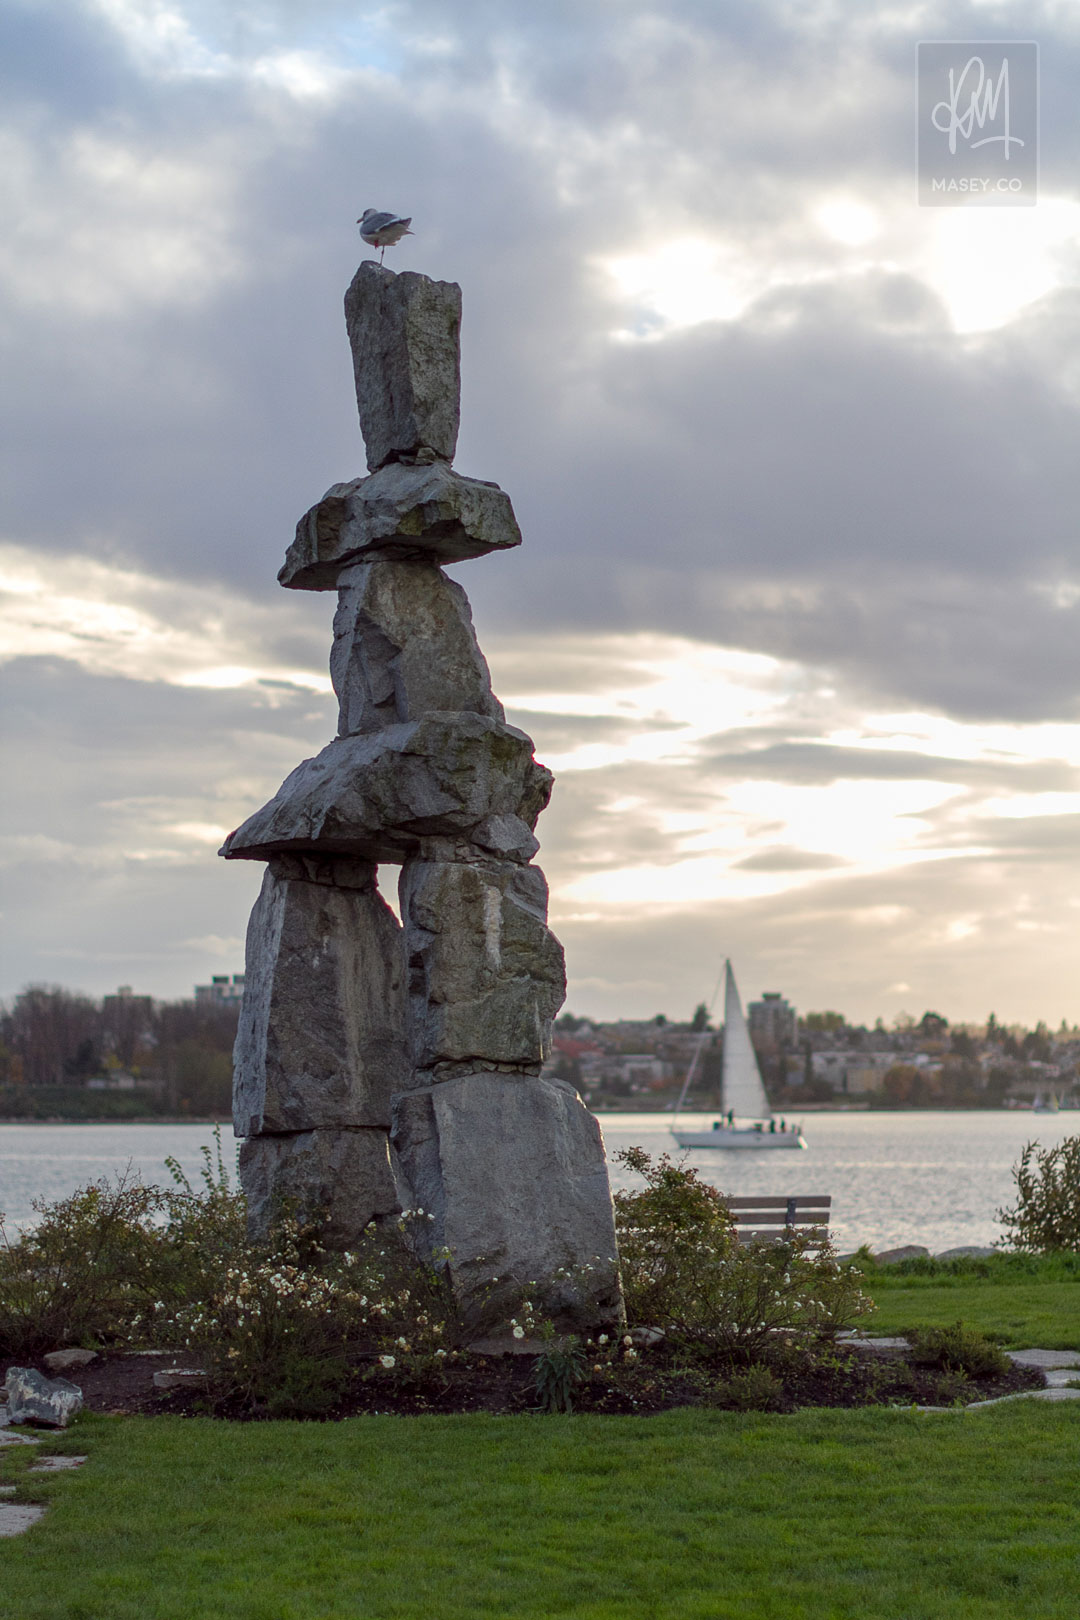 The Ilanaaq Inukshuk on the shores of Vanvouer's English Bay